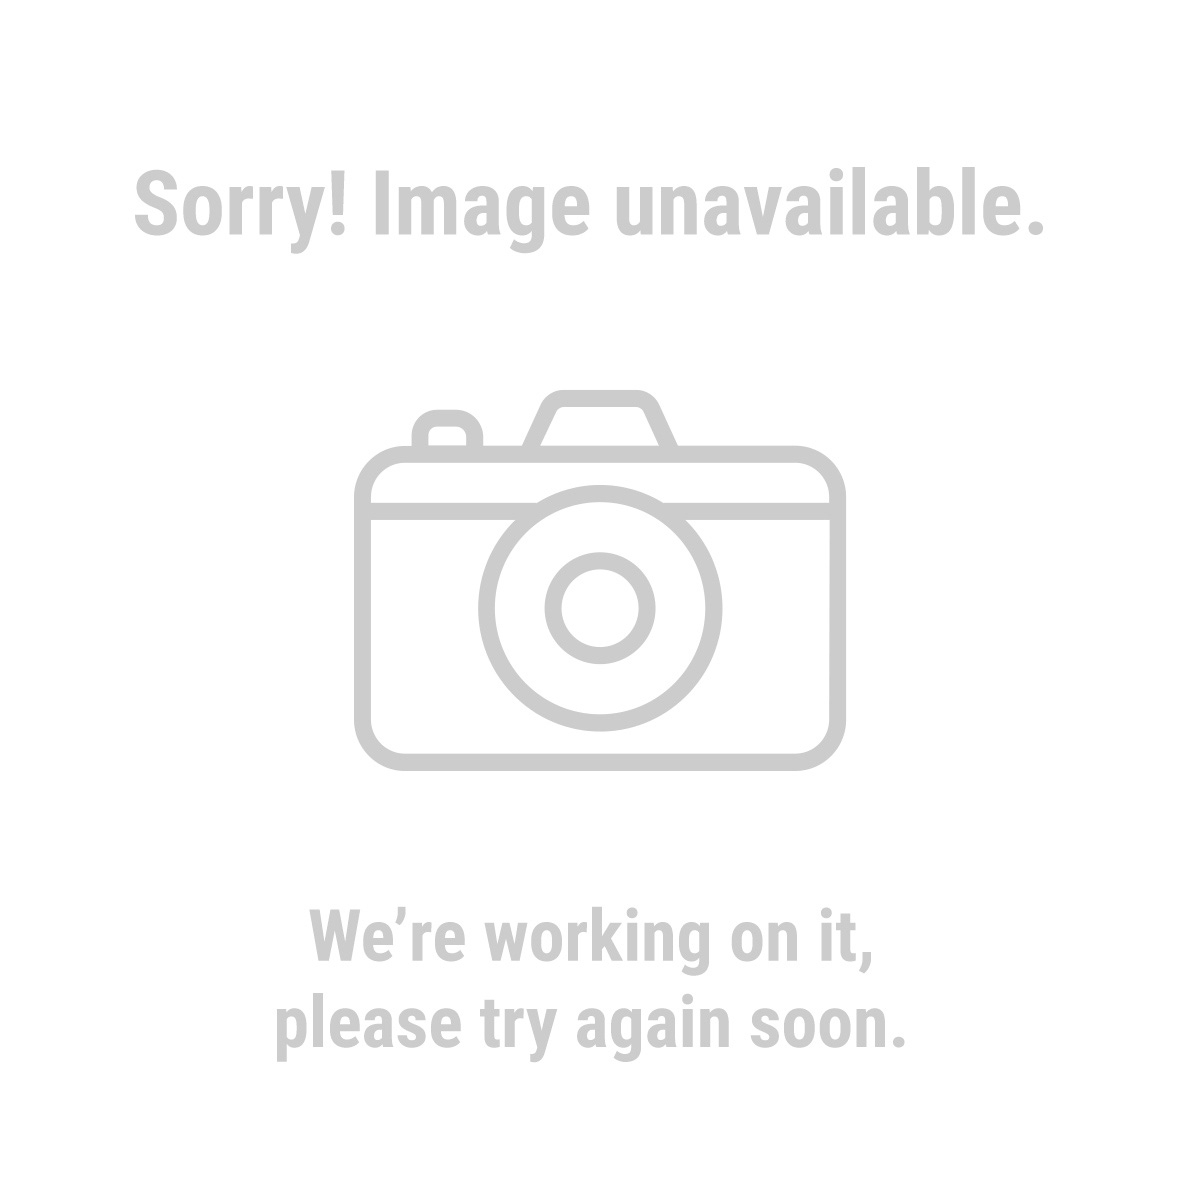 Bunker Hill Security 60498 36 LED Solar Security Light